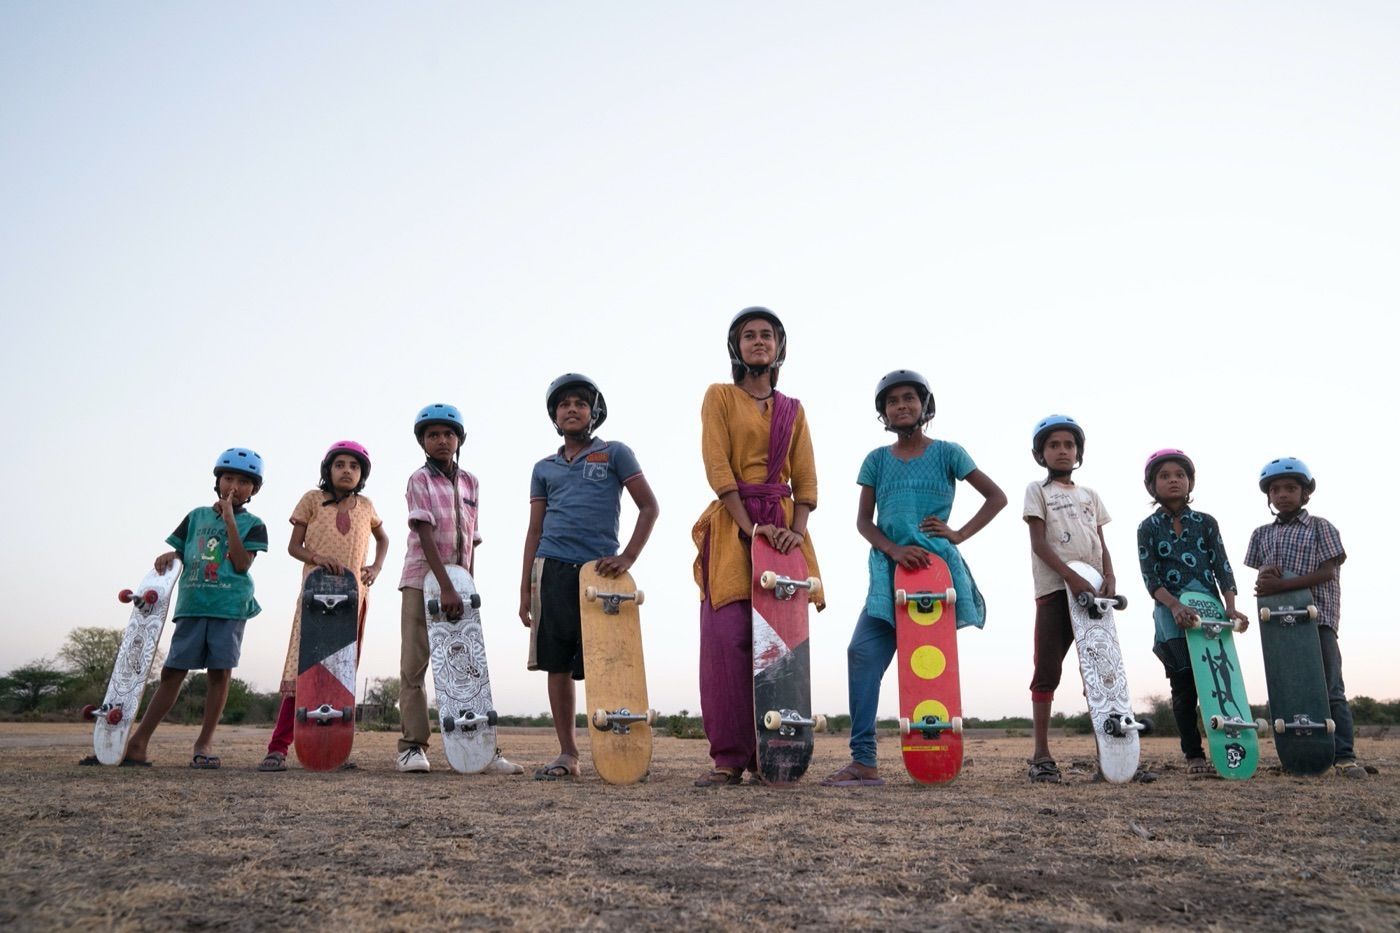 Skater Girl Trailer Reveals Netflix Release Date for Coming-of-Age Movie